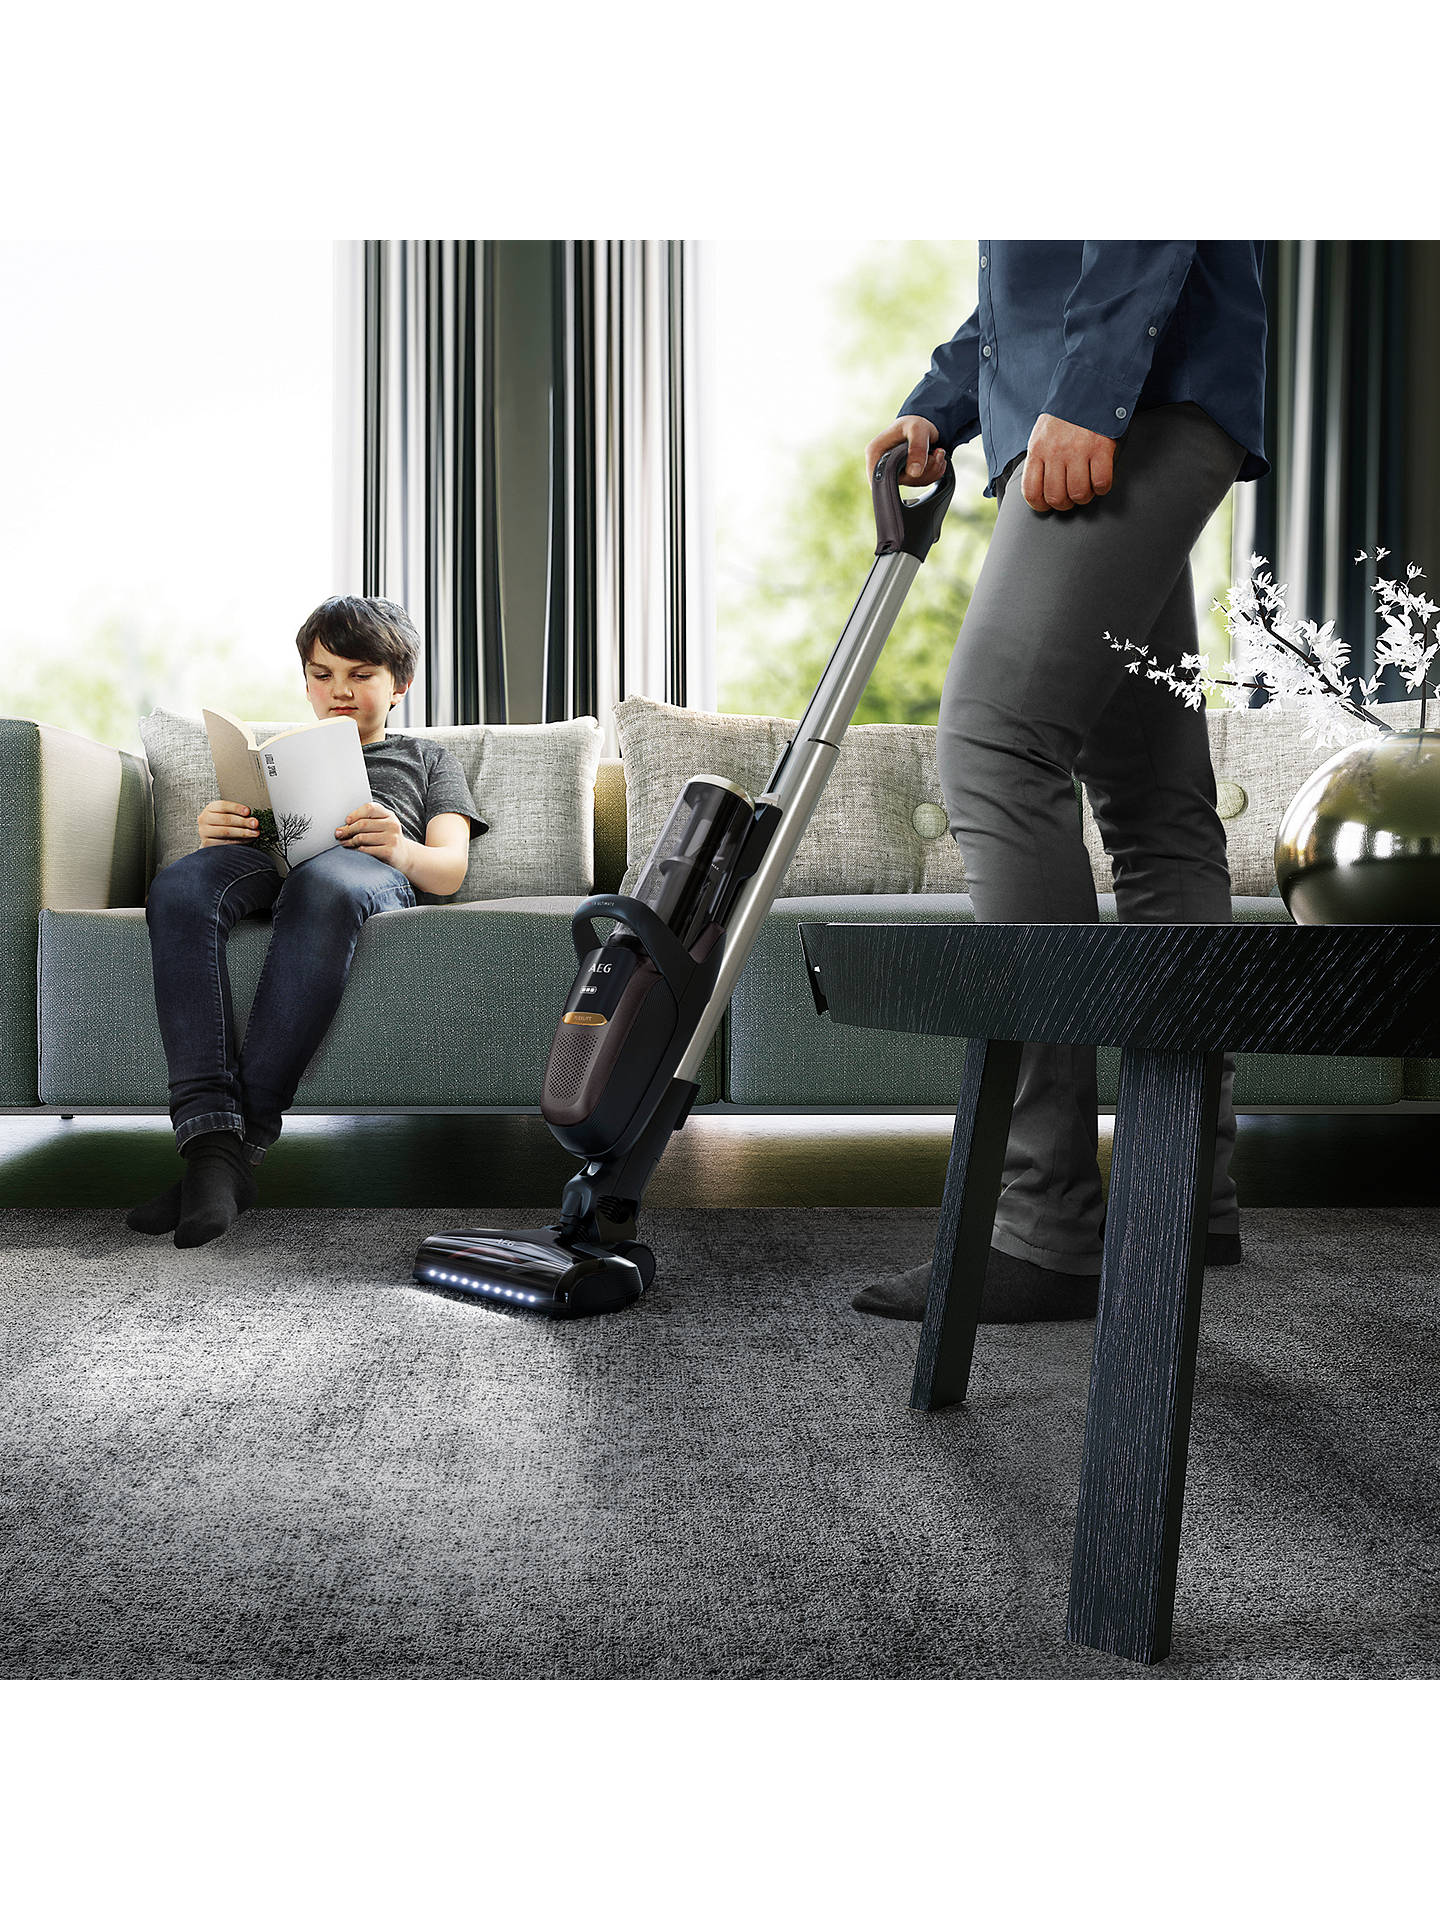 BuyAEG FX9 Ultimate Cordless Vacuum Cleaner, Iron Grey Online at johnlewis.com